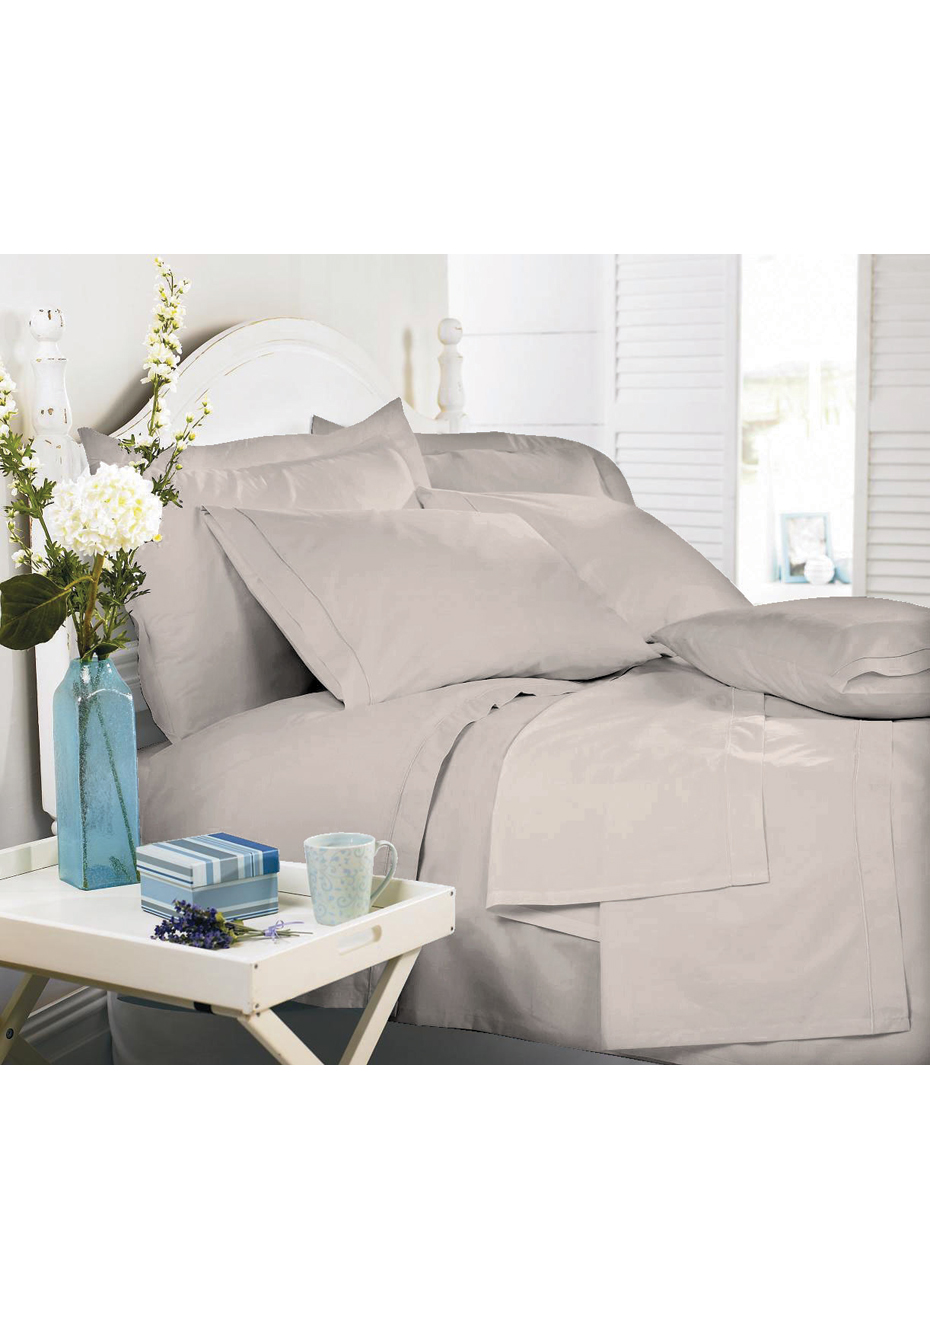 100 Egyptian Cotton Sheets Royal Comfort Middleton Collection 1000tc 100 Egyptian Cotton Sheet Set Warm Grey Single